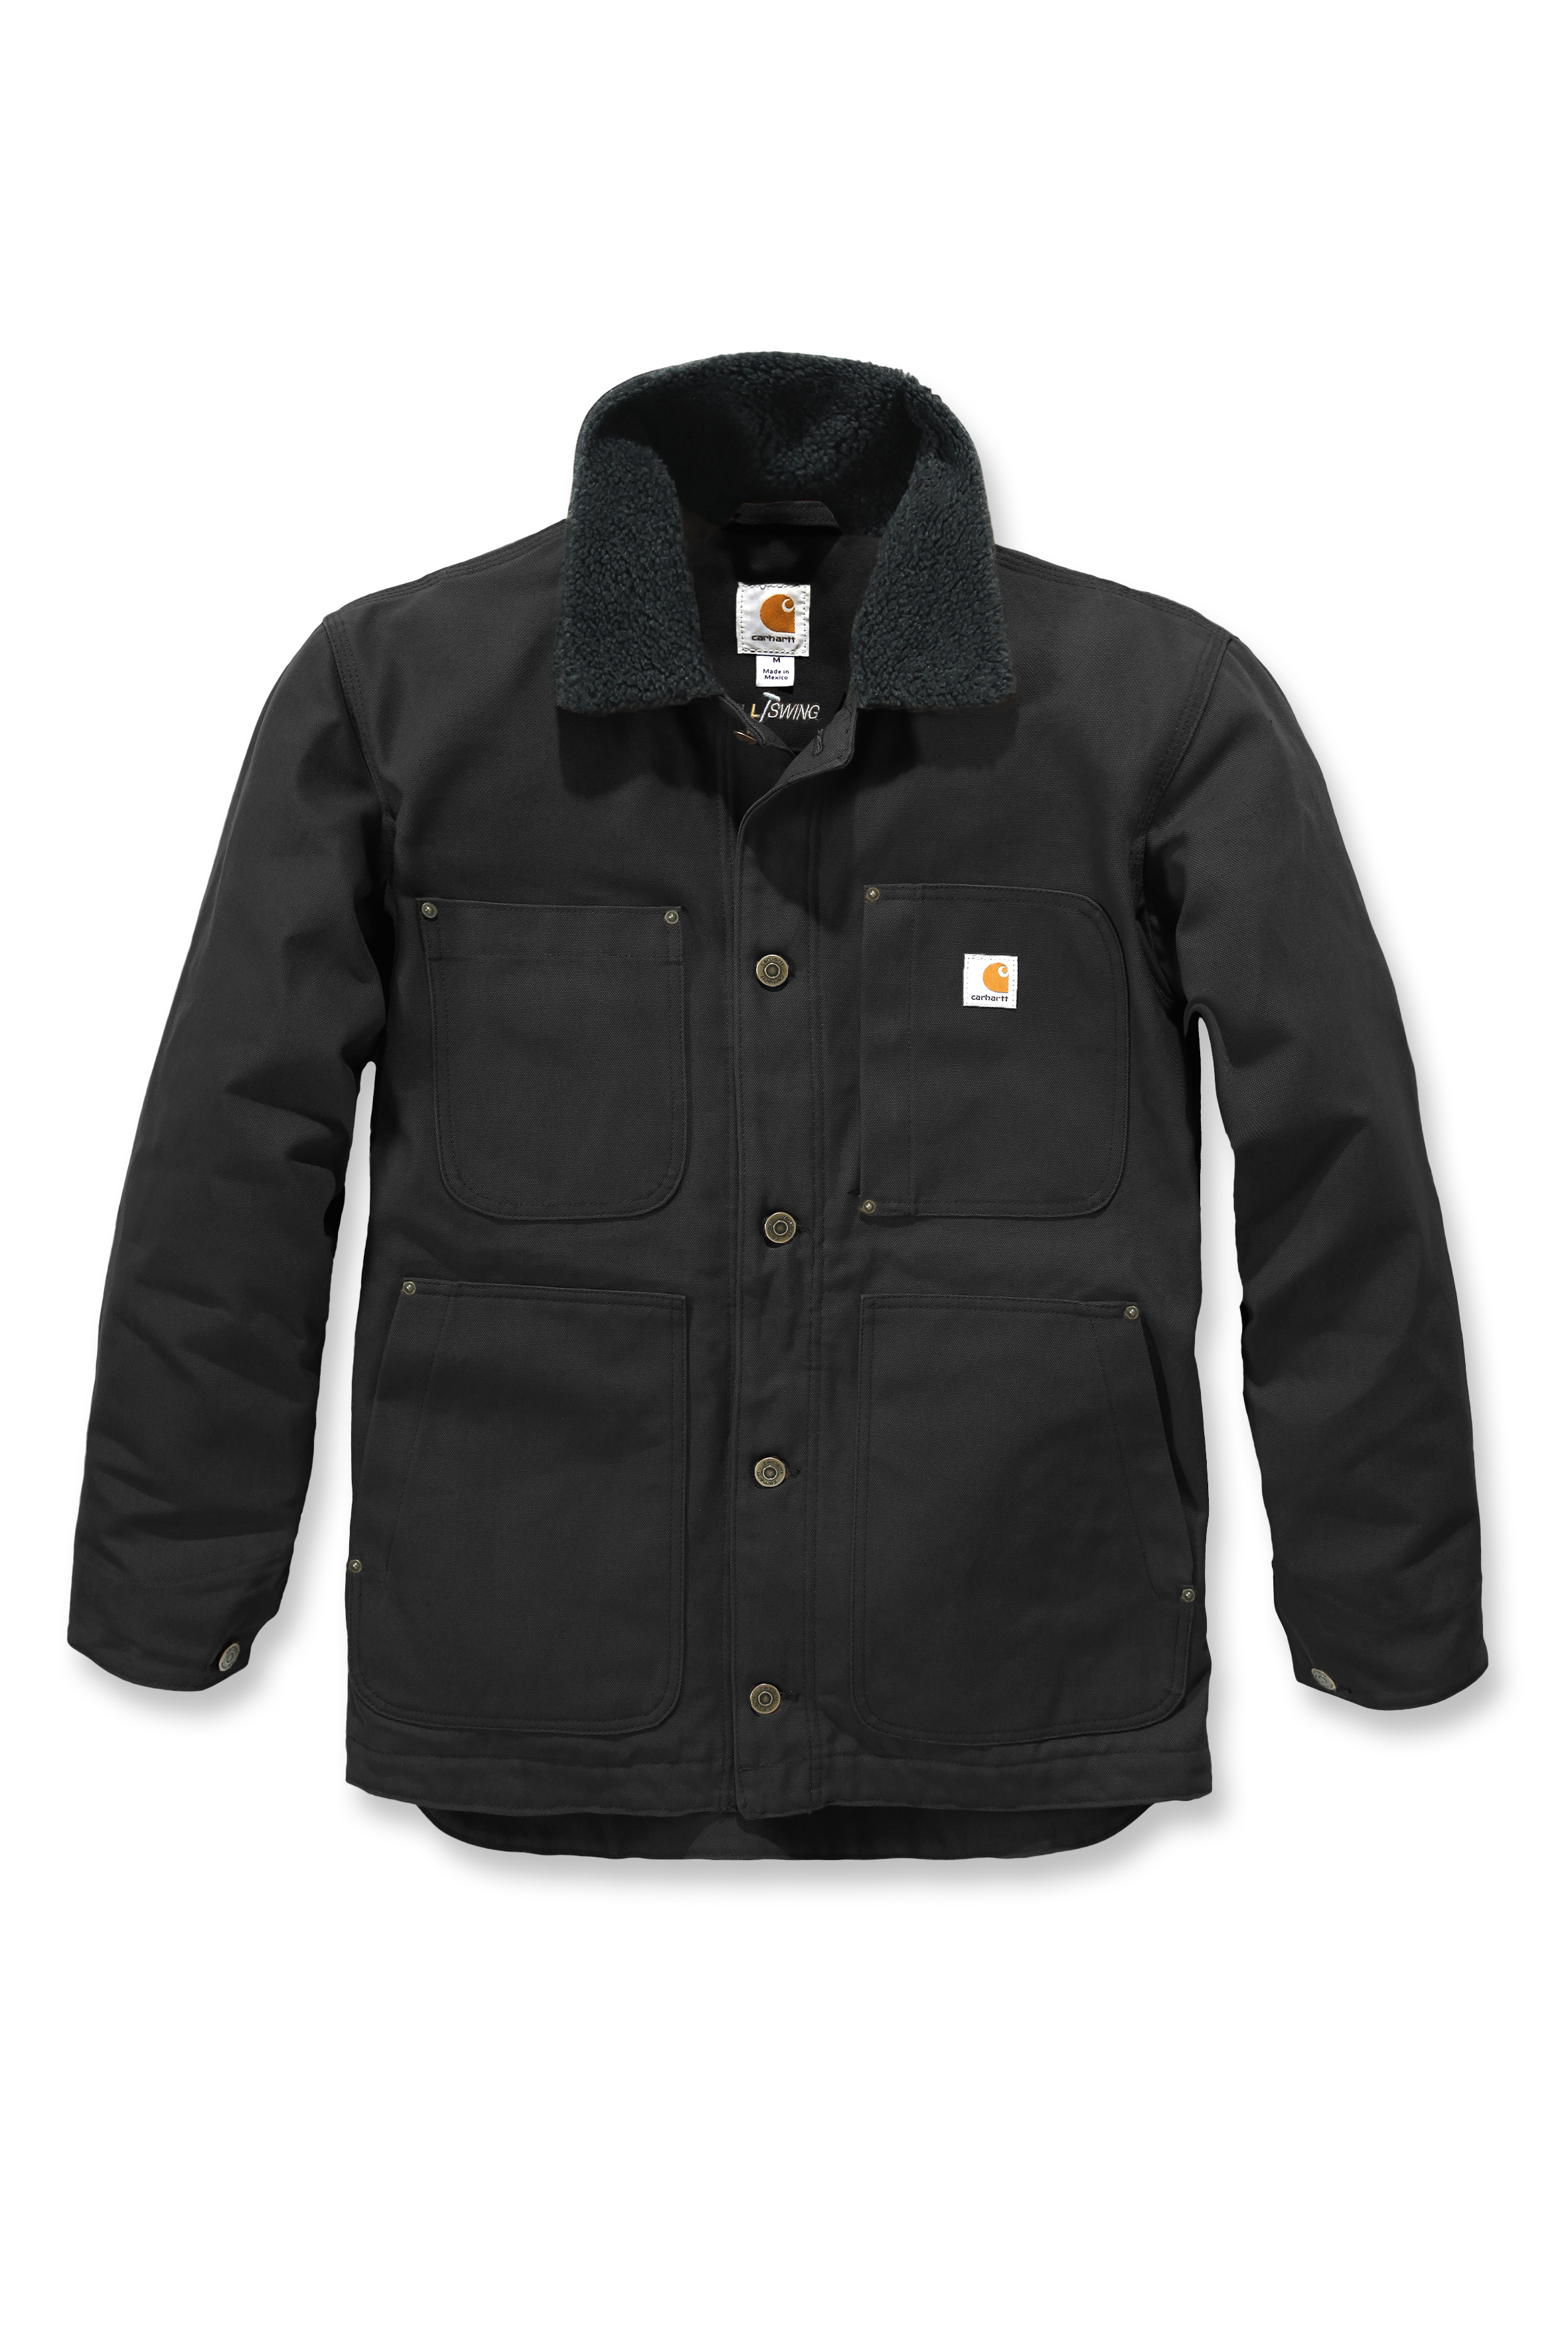 Full Swing Chore Coat Carhartt Workwear Arbeidsjakke